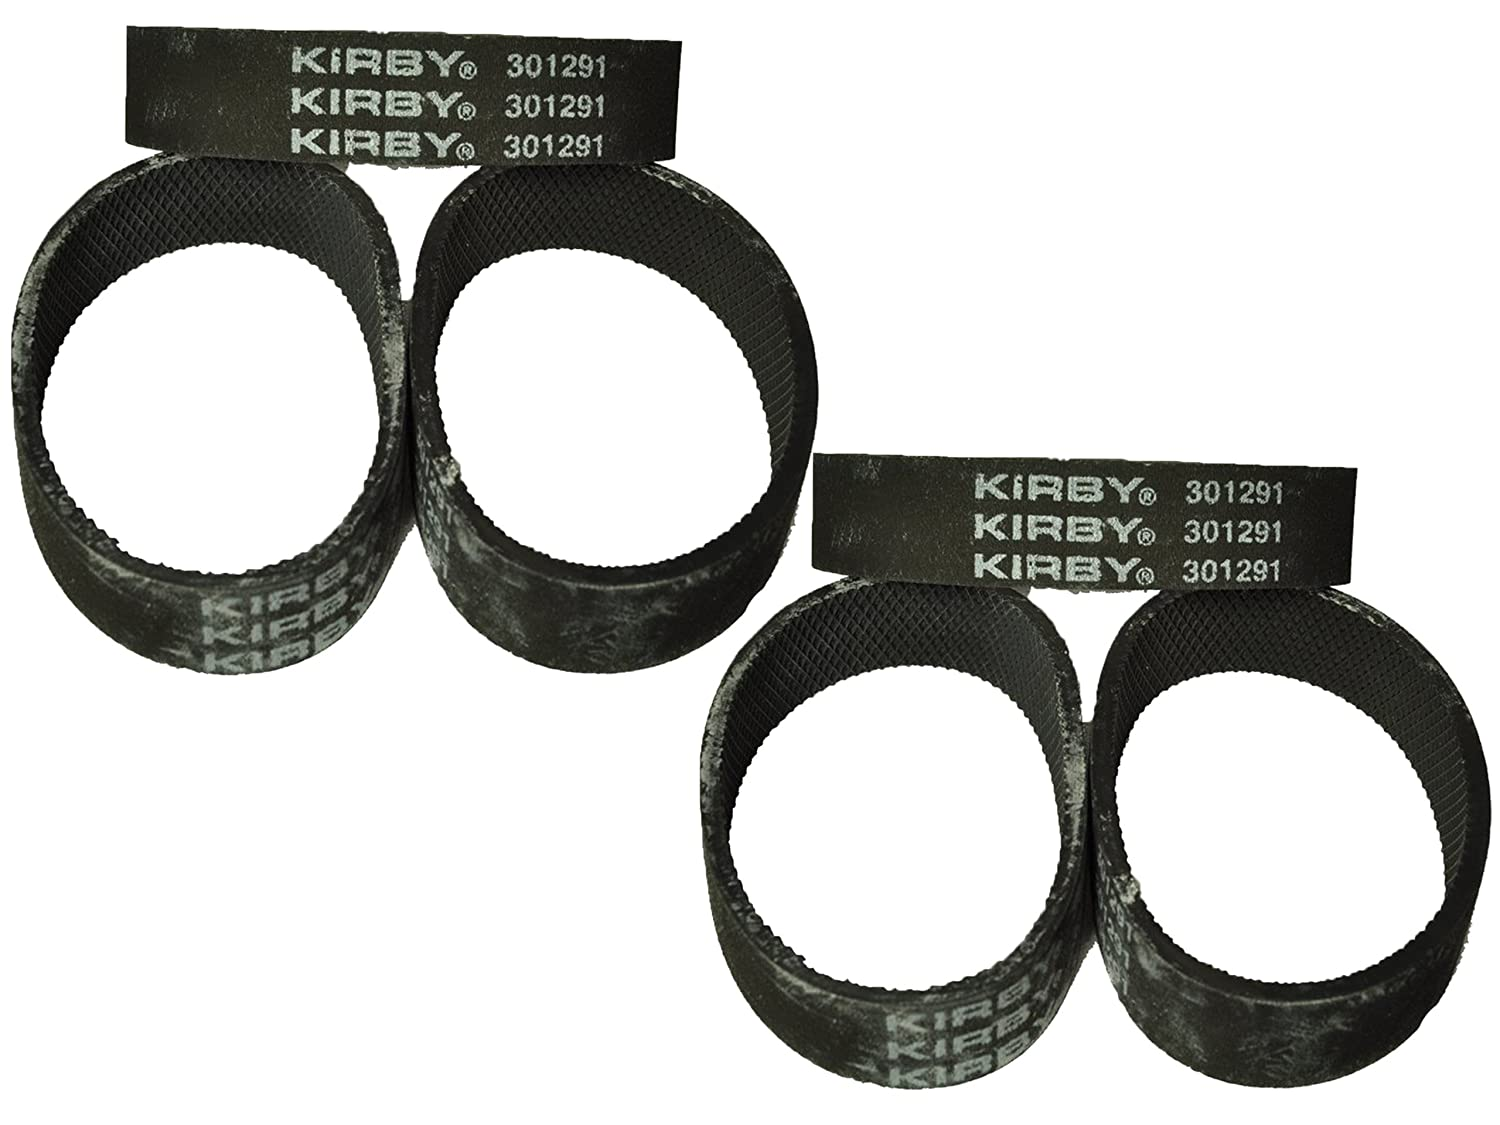 Kirby Vacuum Cleaner Belts 301291 Fits all Generation series models G3, G4, G5, G6, G7, Ultimate G, and Diamond Edition 6 Belts